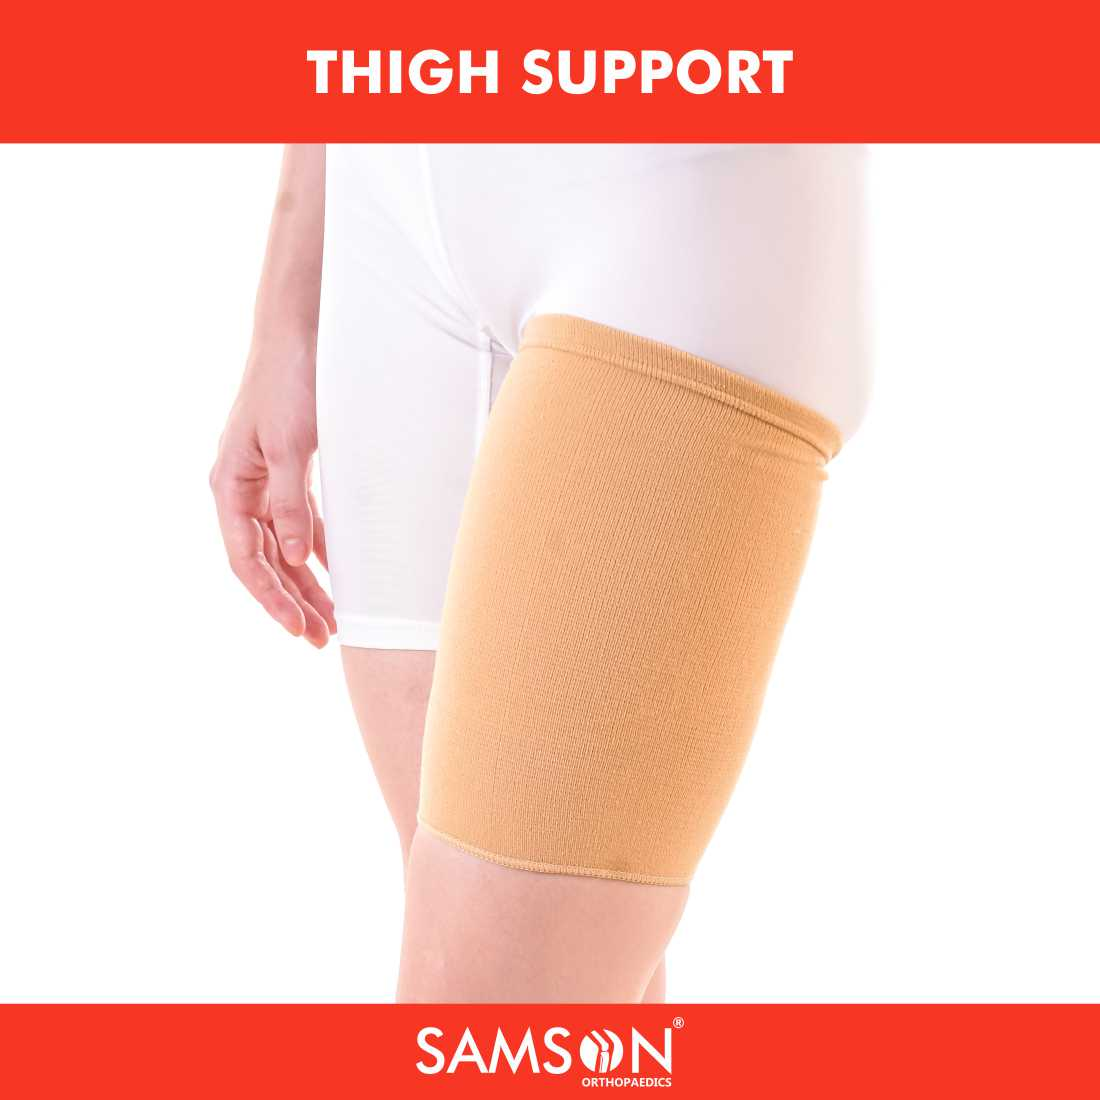 THIGH SUPPORT ONLINE IMAGES 1